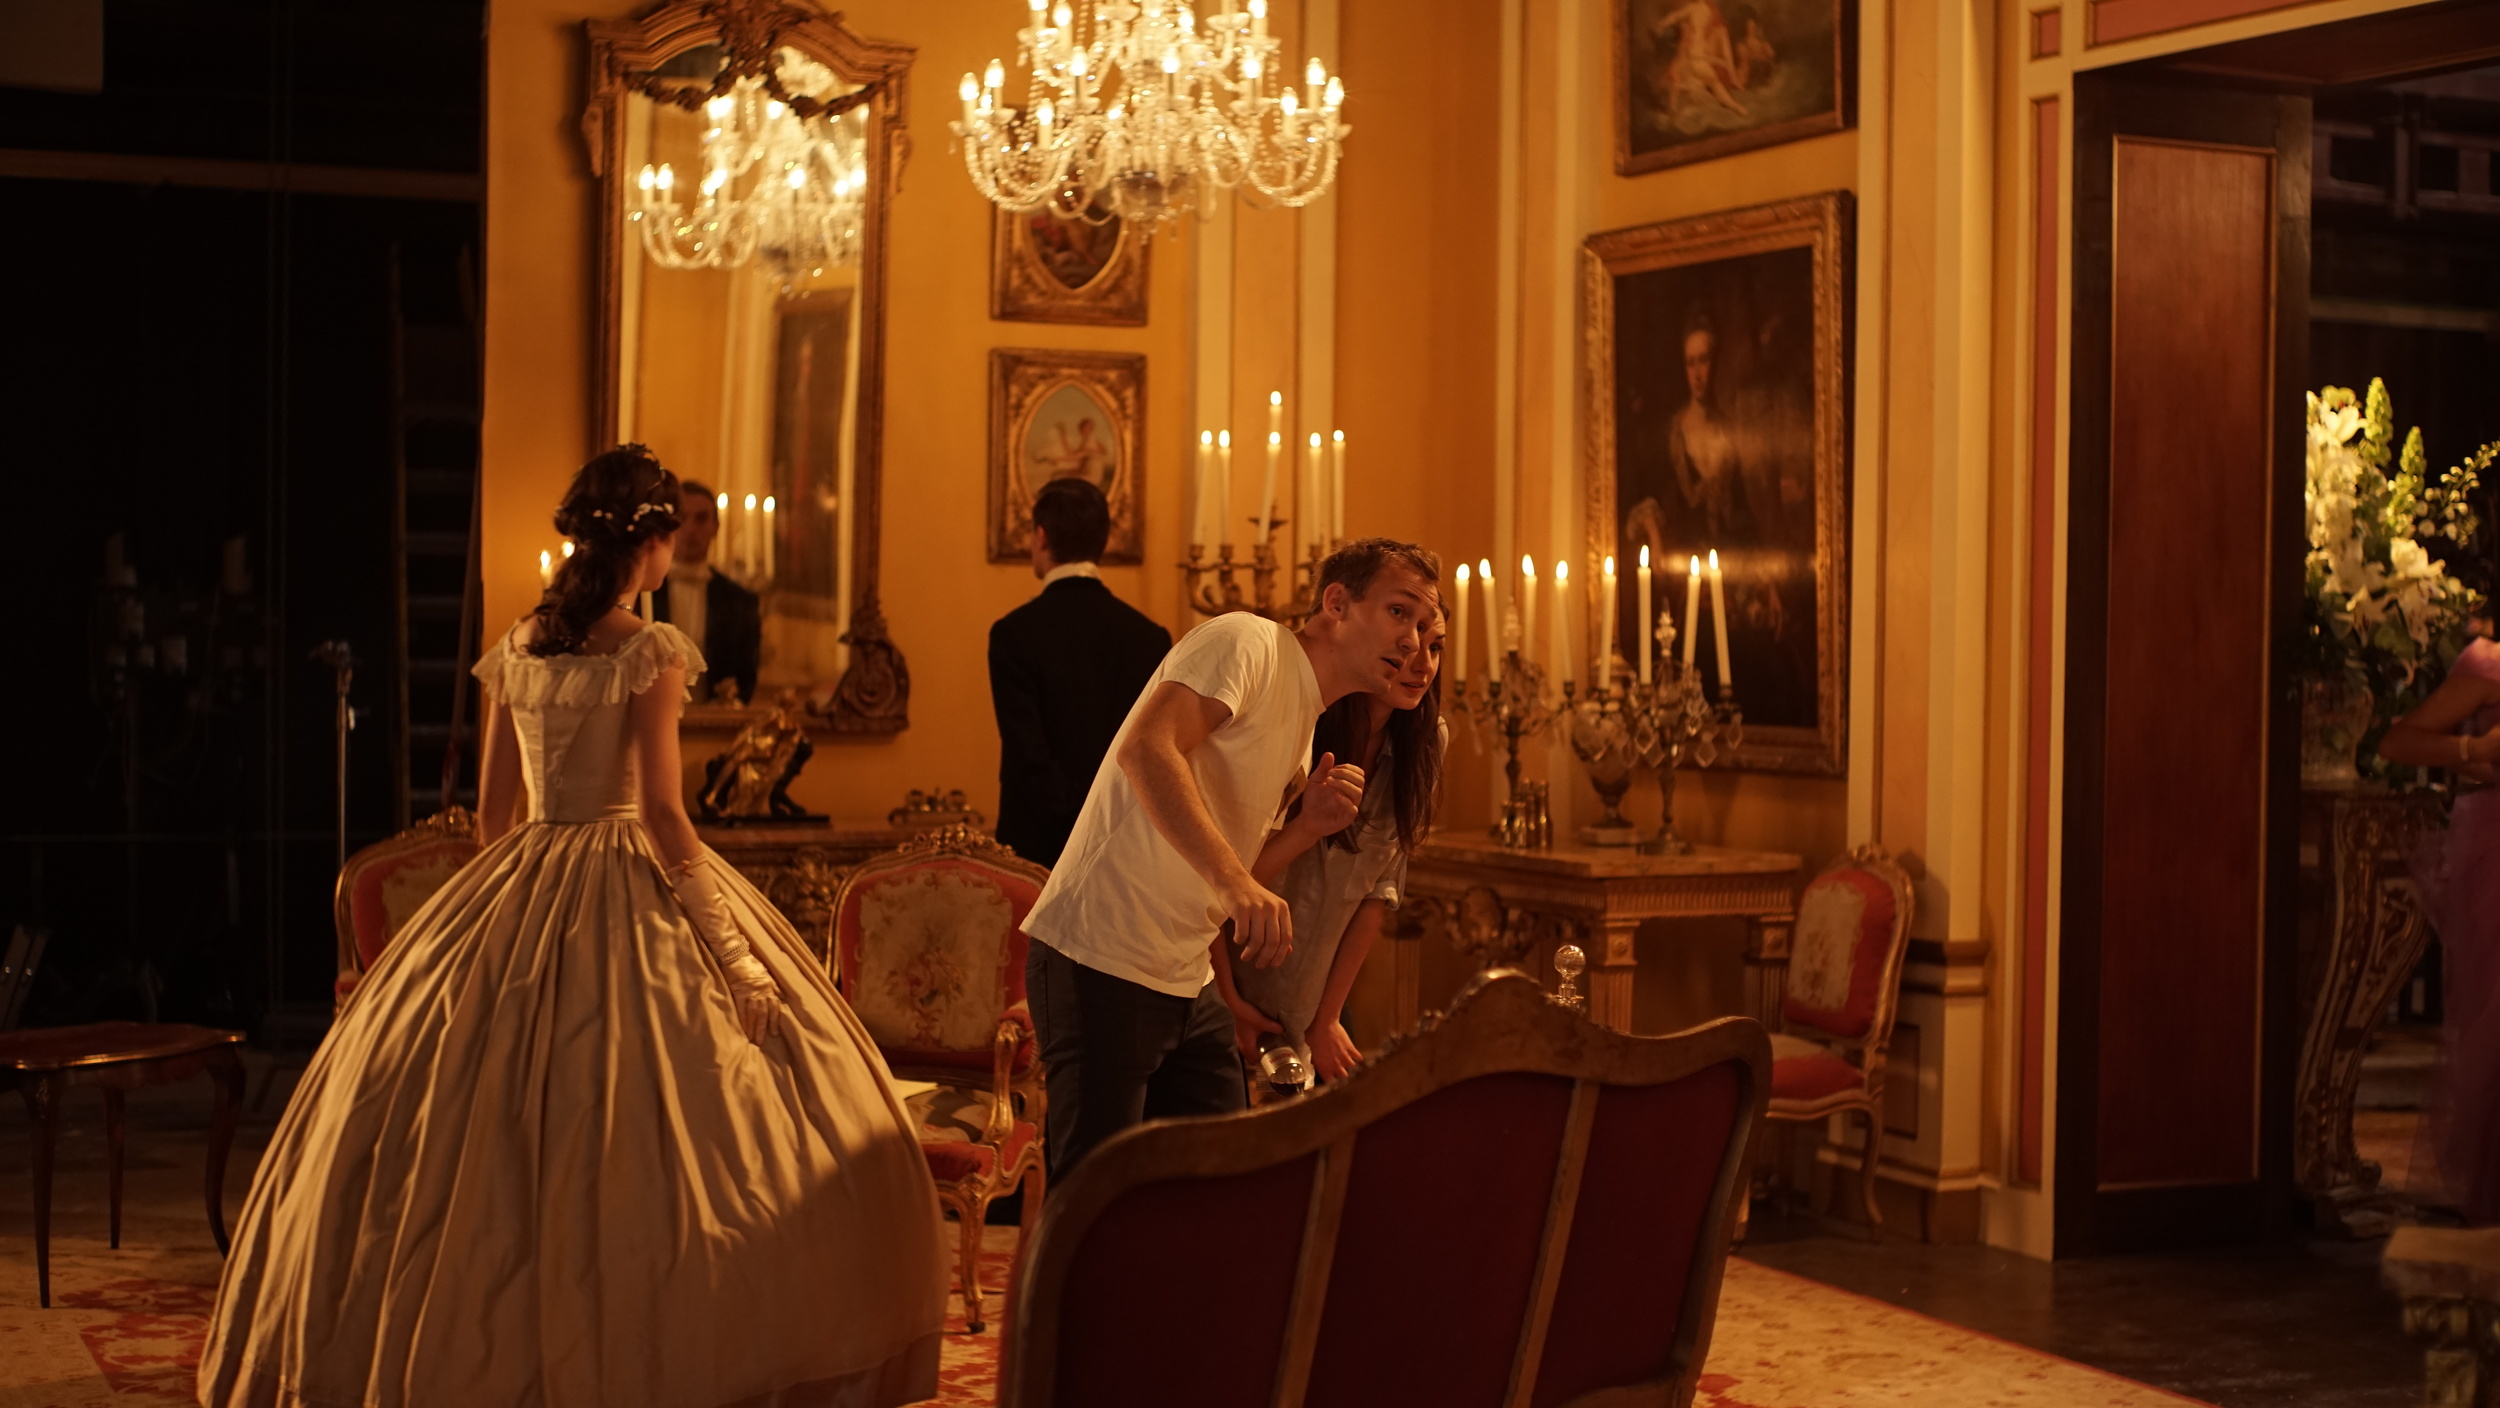 On the set of the Farley commercial with DOP Sverre Sordal, 2014